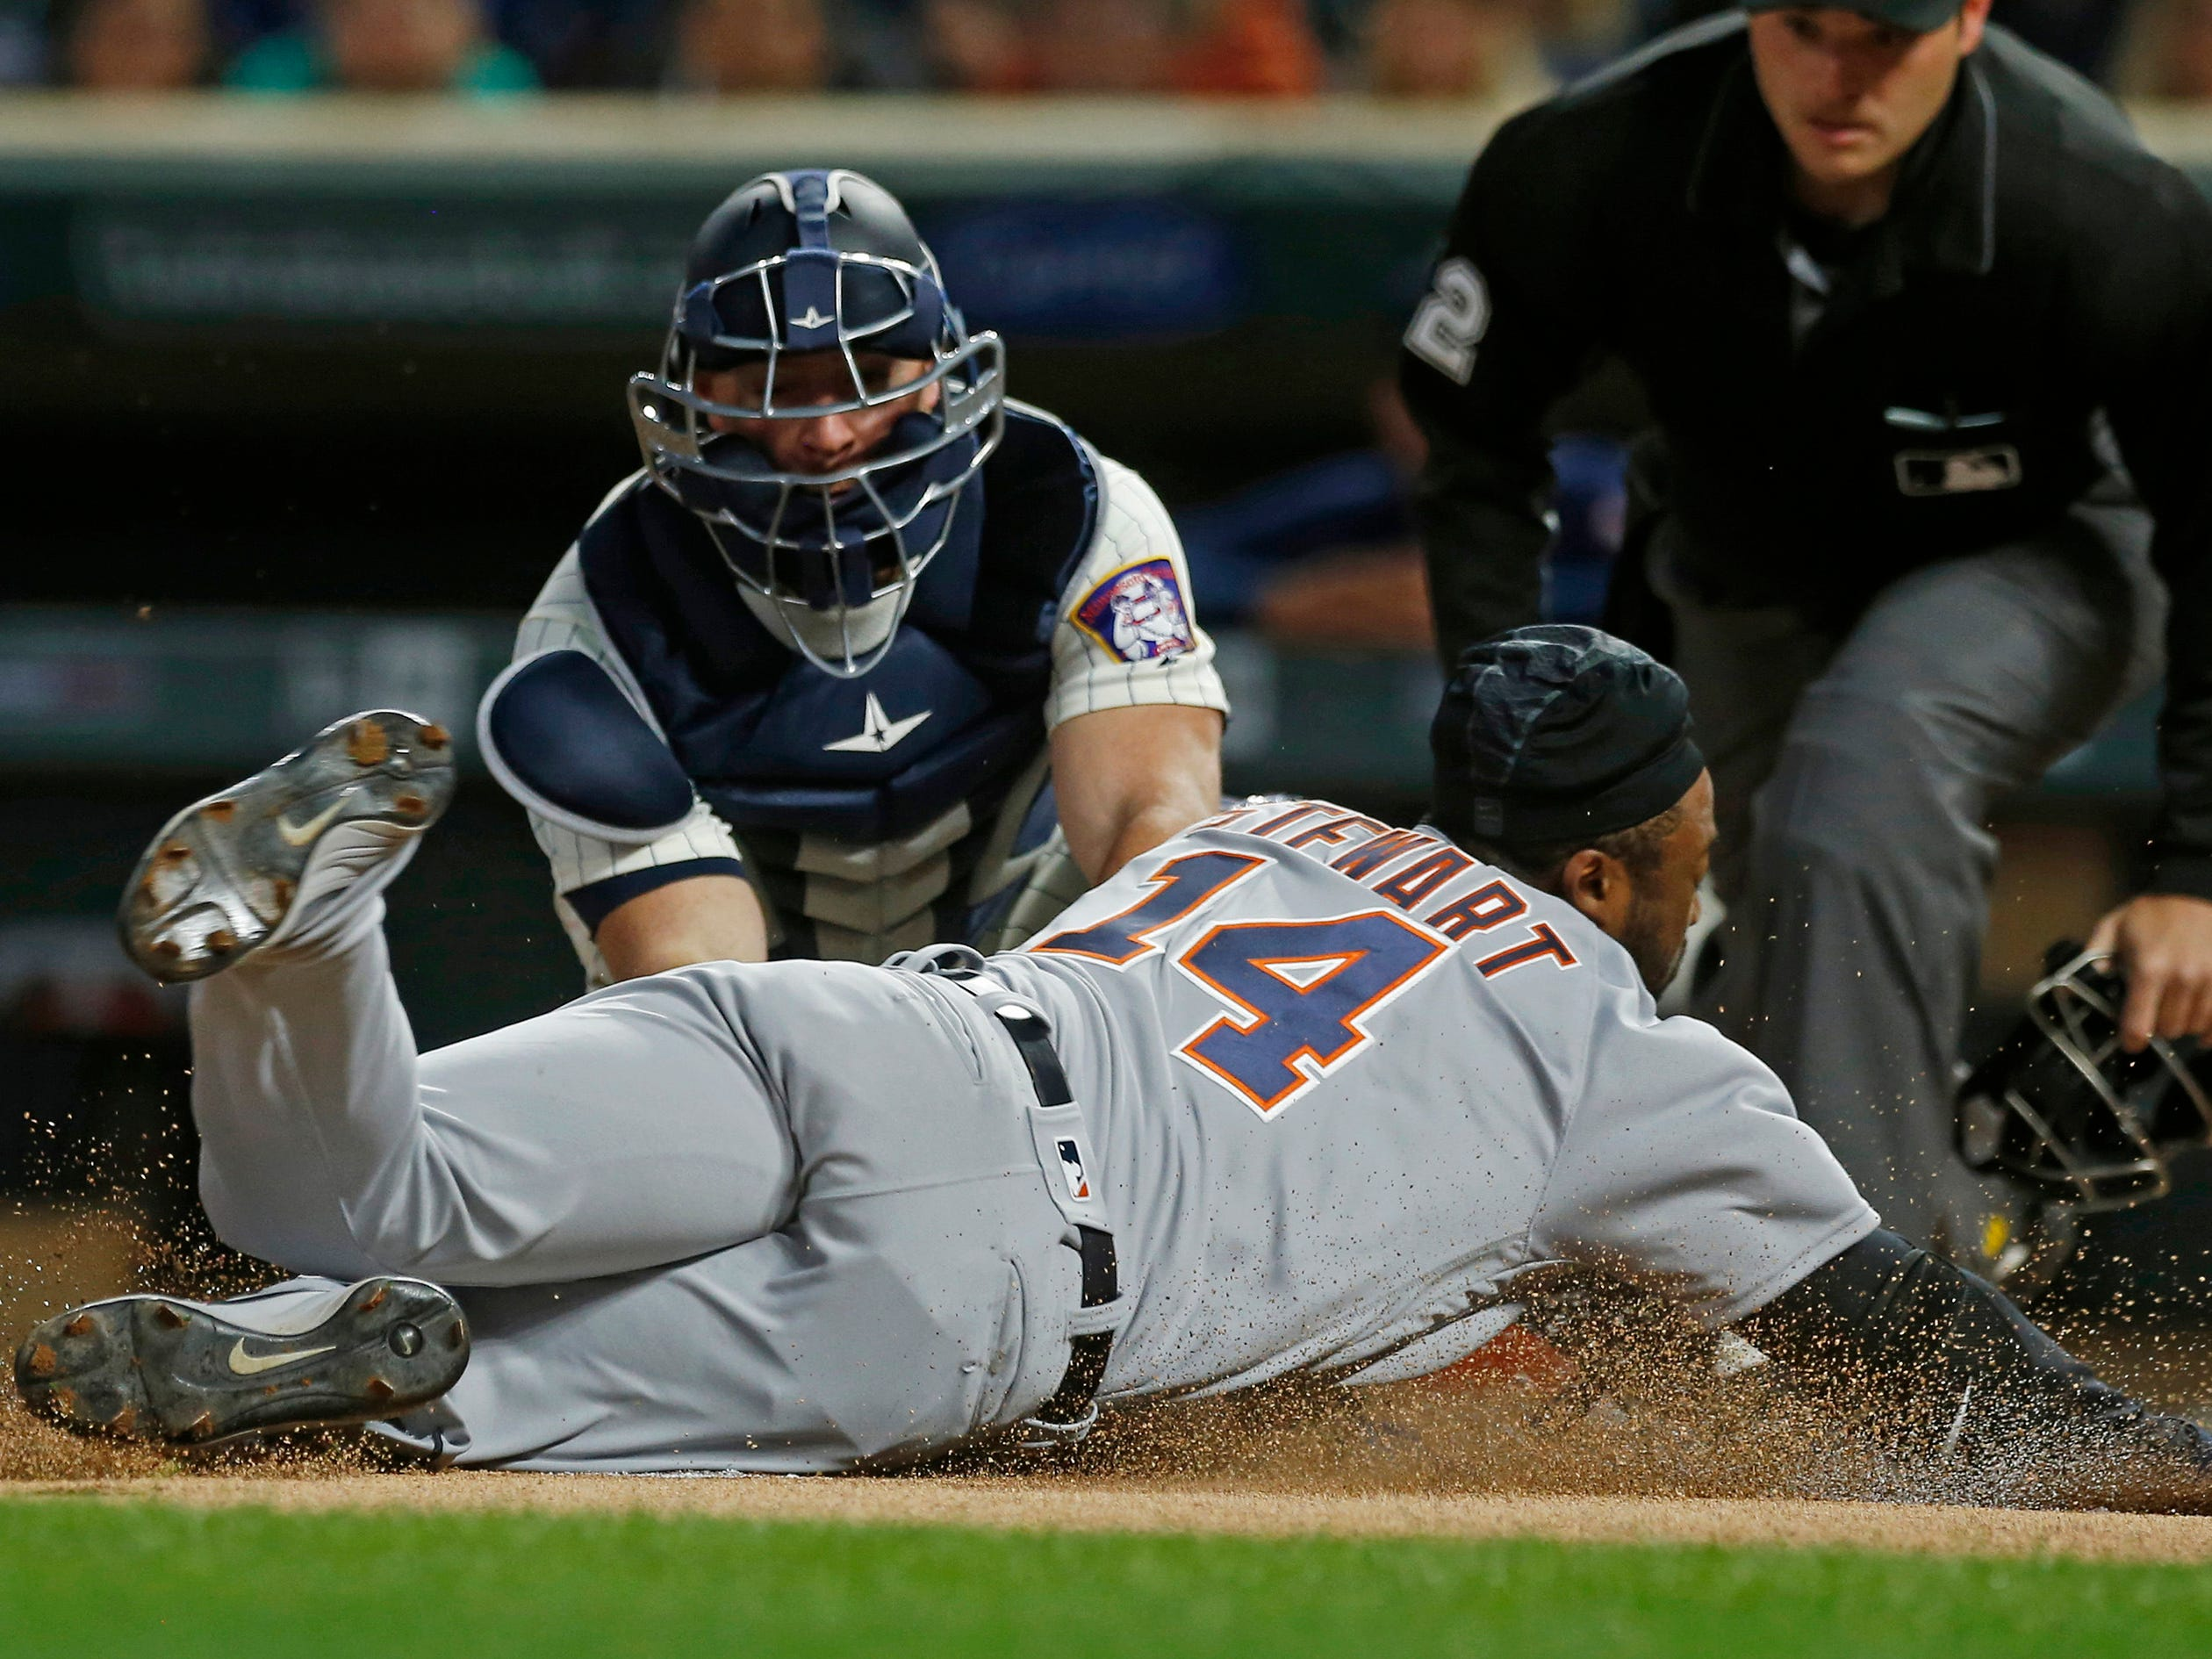 Minnesota Twins catcher Chris Gimenez, left, tags out Detroit Tigers' Christin Stewart as he attempted to score for an inside-the-park home run in the first inning of a baseball game Wednesday, Sept. 26, 2018, in Minneapolis.